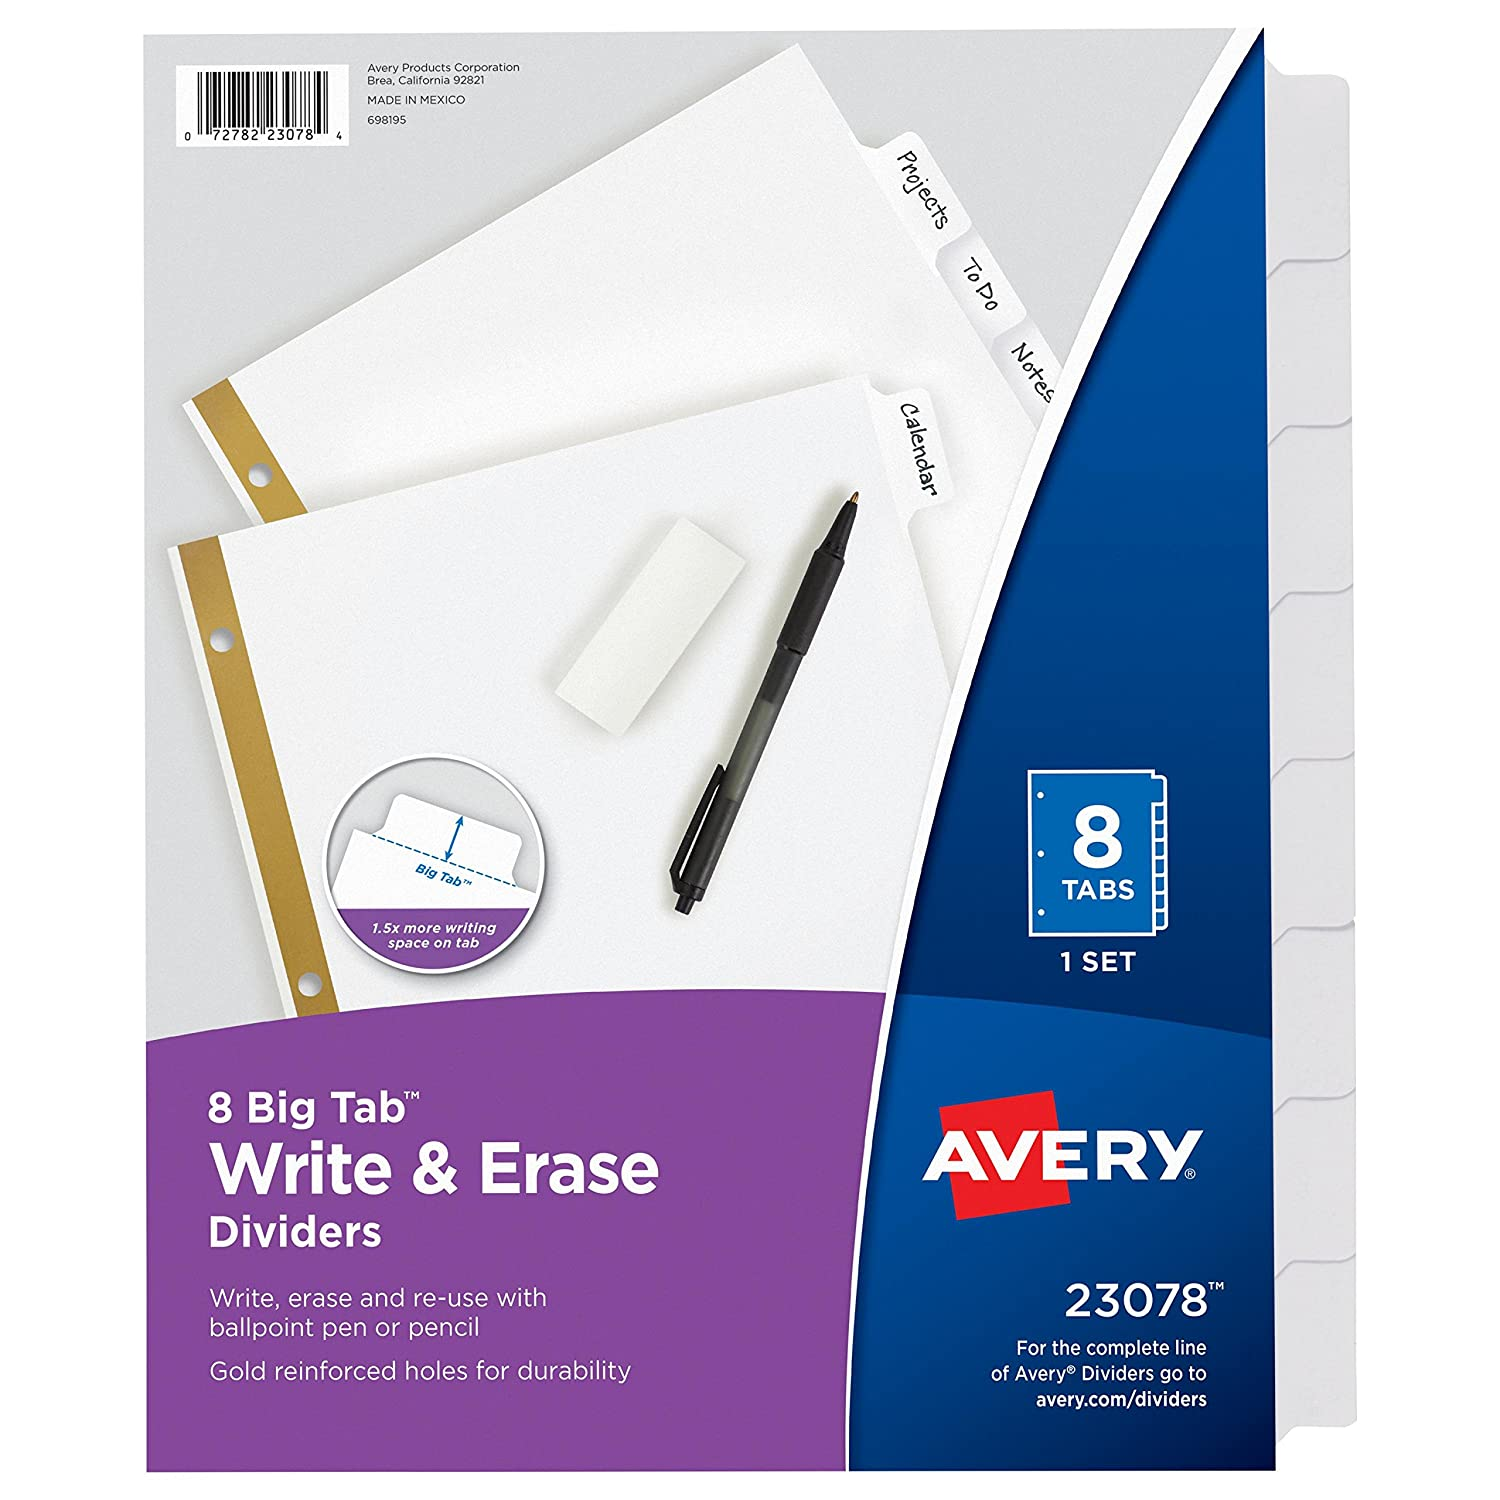 Avery Big Tab Write & Erase Dividers, 5 White Tabs, Case Pack of 48 Sets (23075) Avery Products Corporation 5007278223075